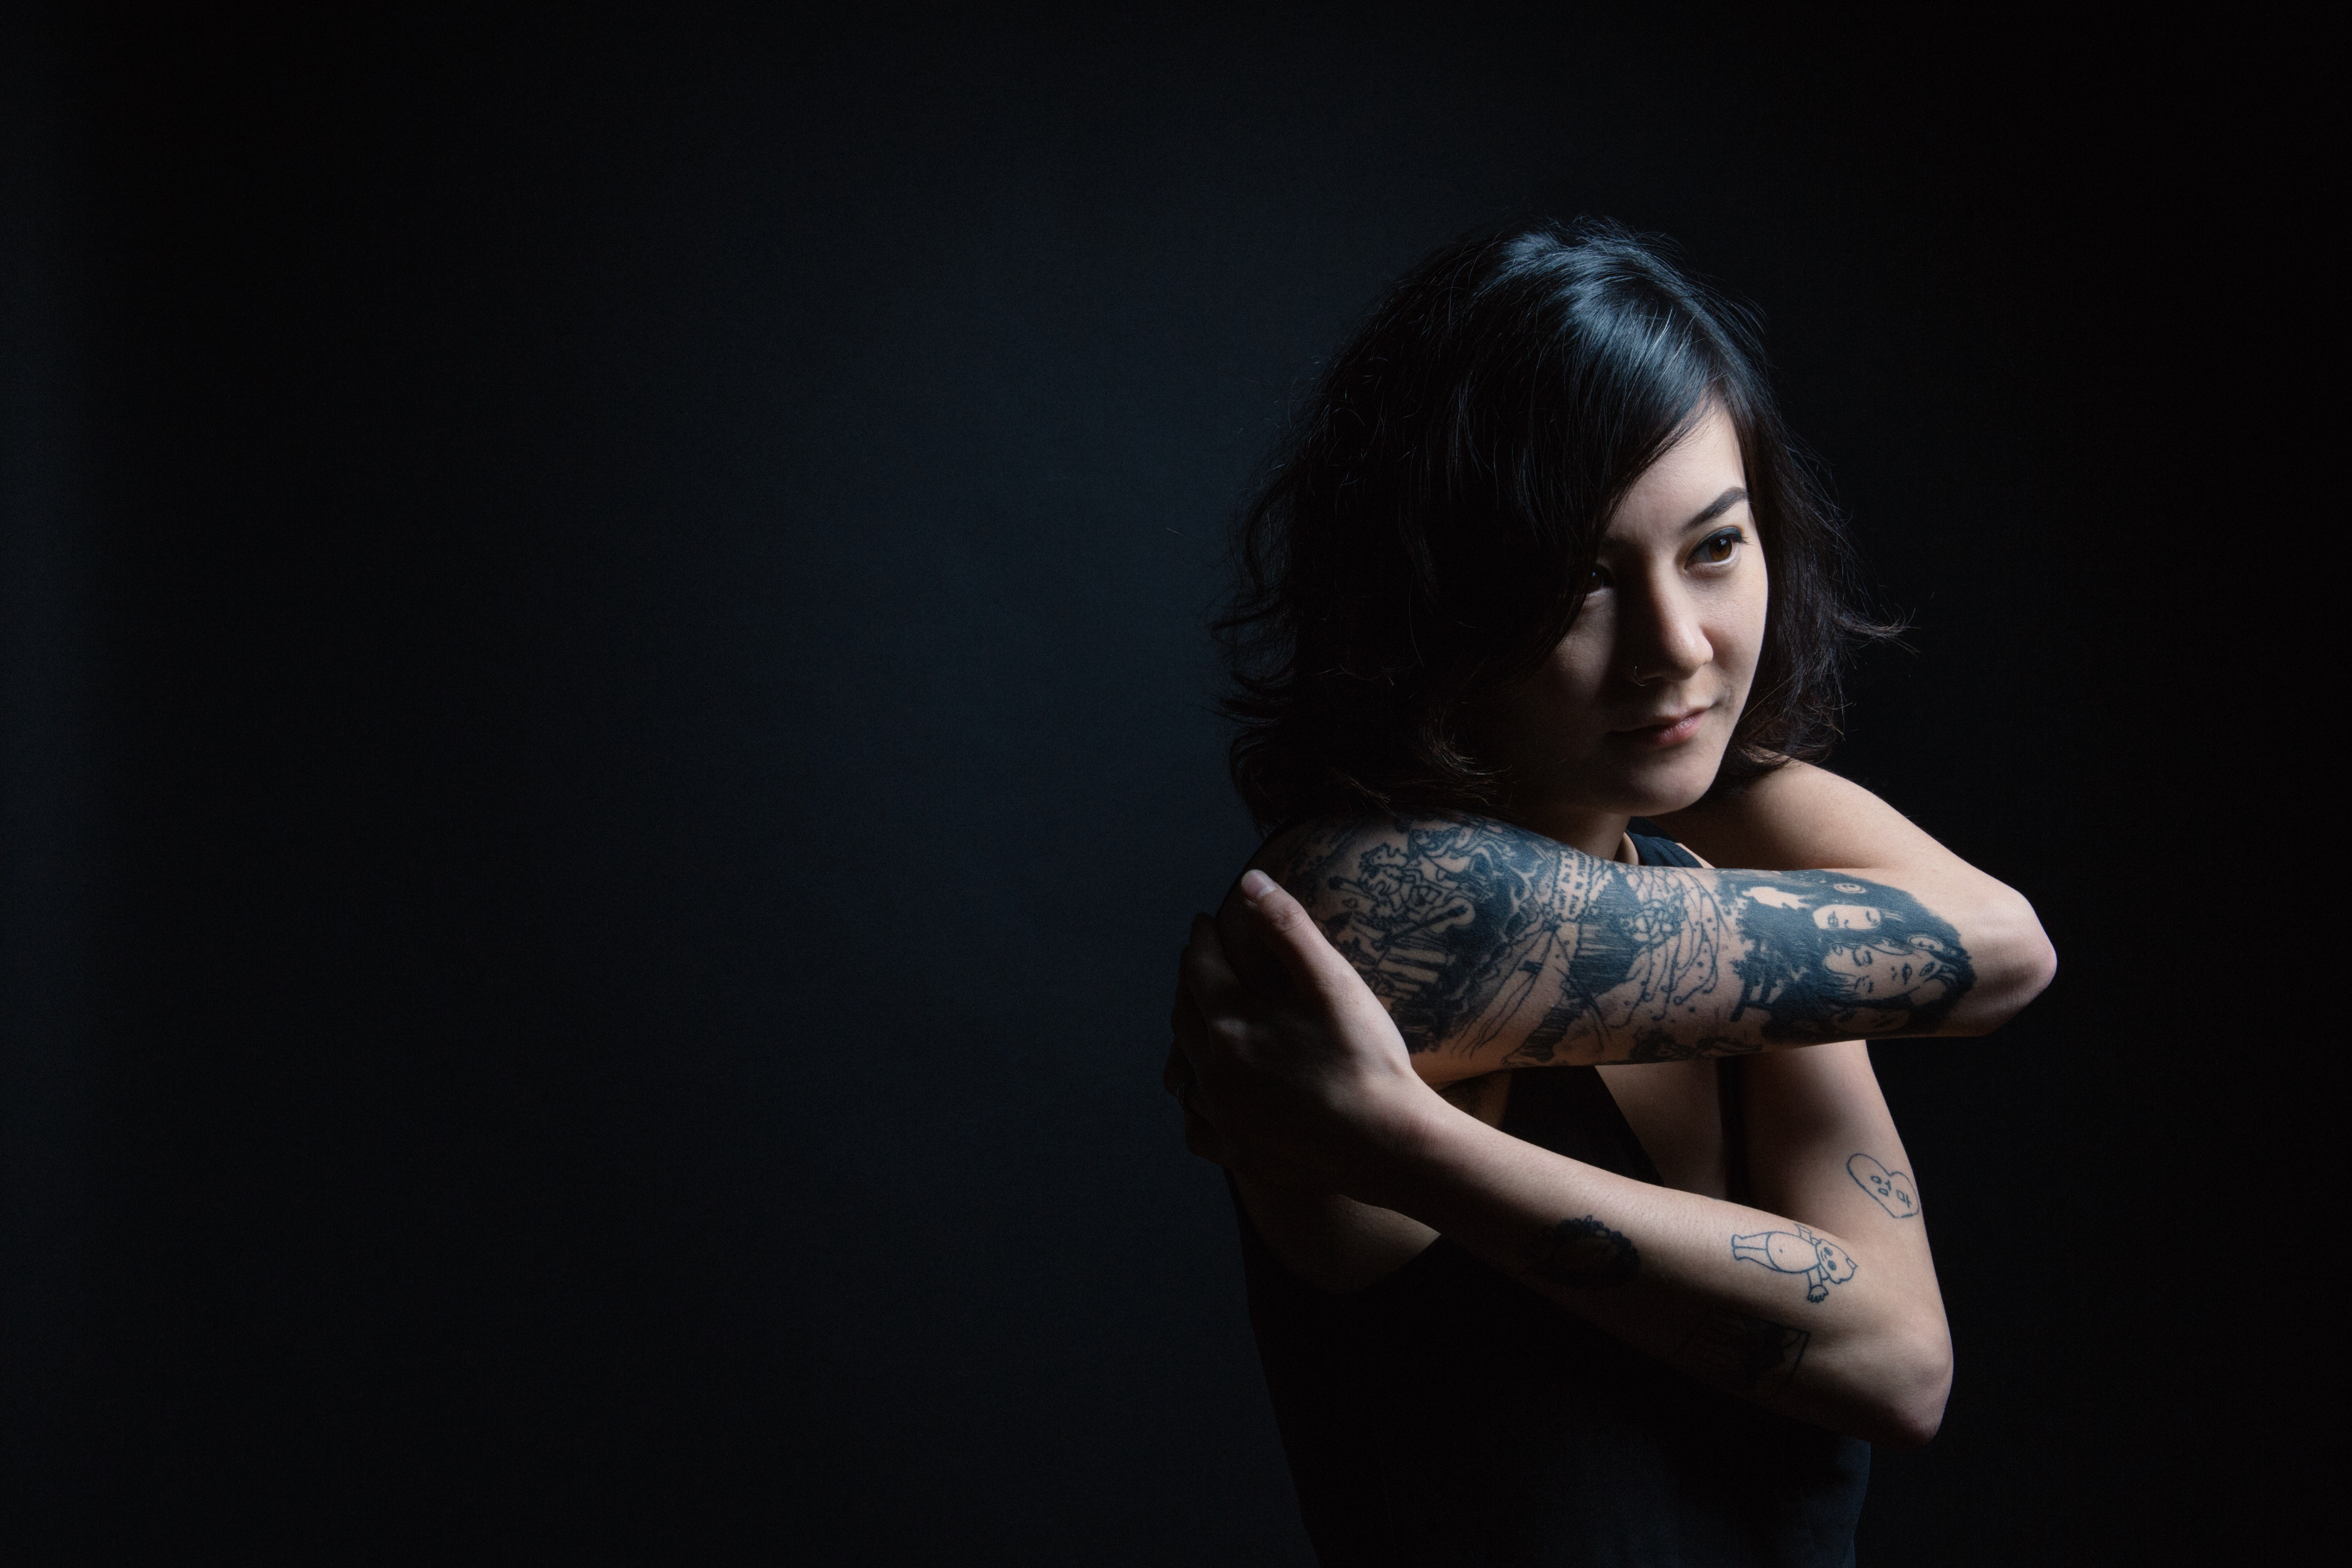 Japanese Breakfast on terrible tours, sci-fi concept albums and making pop music with substance